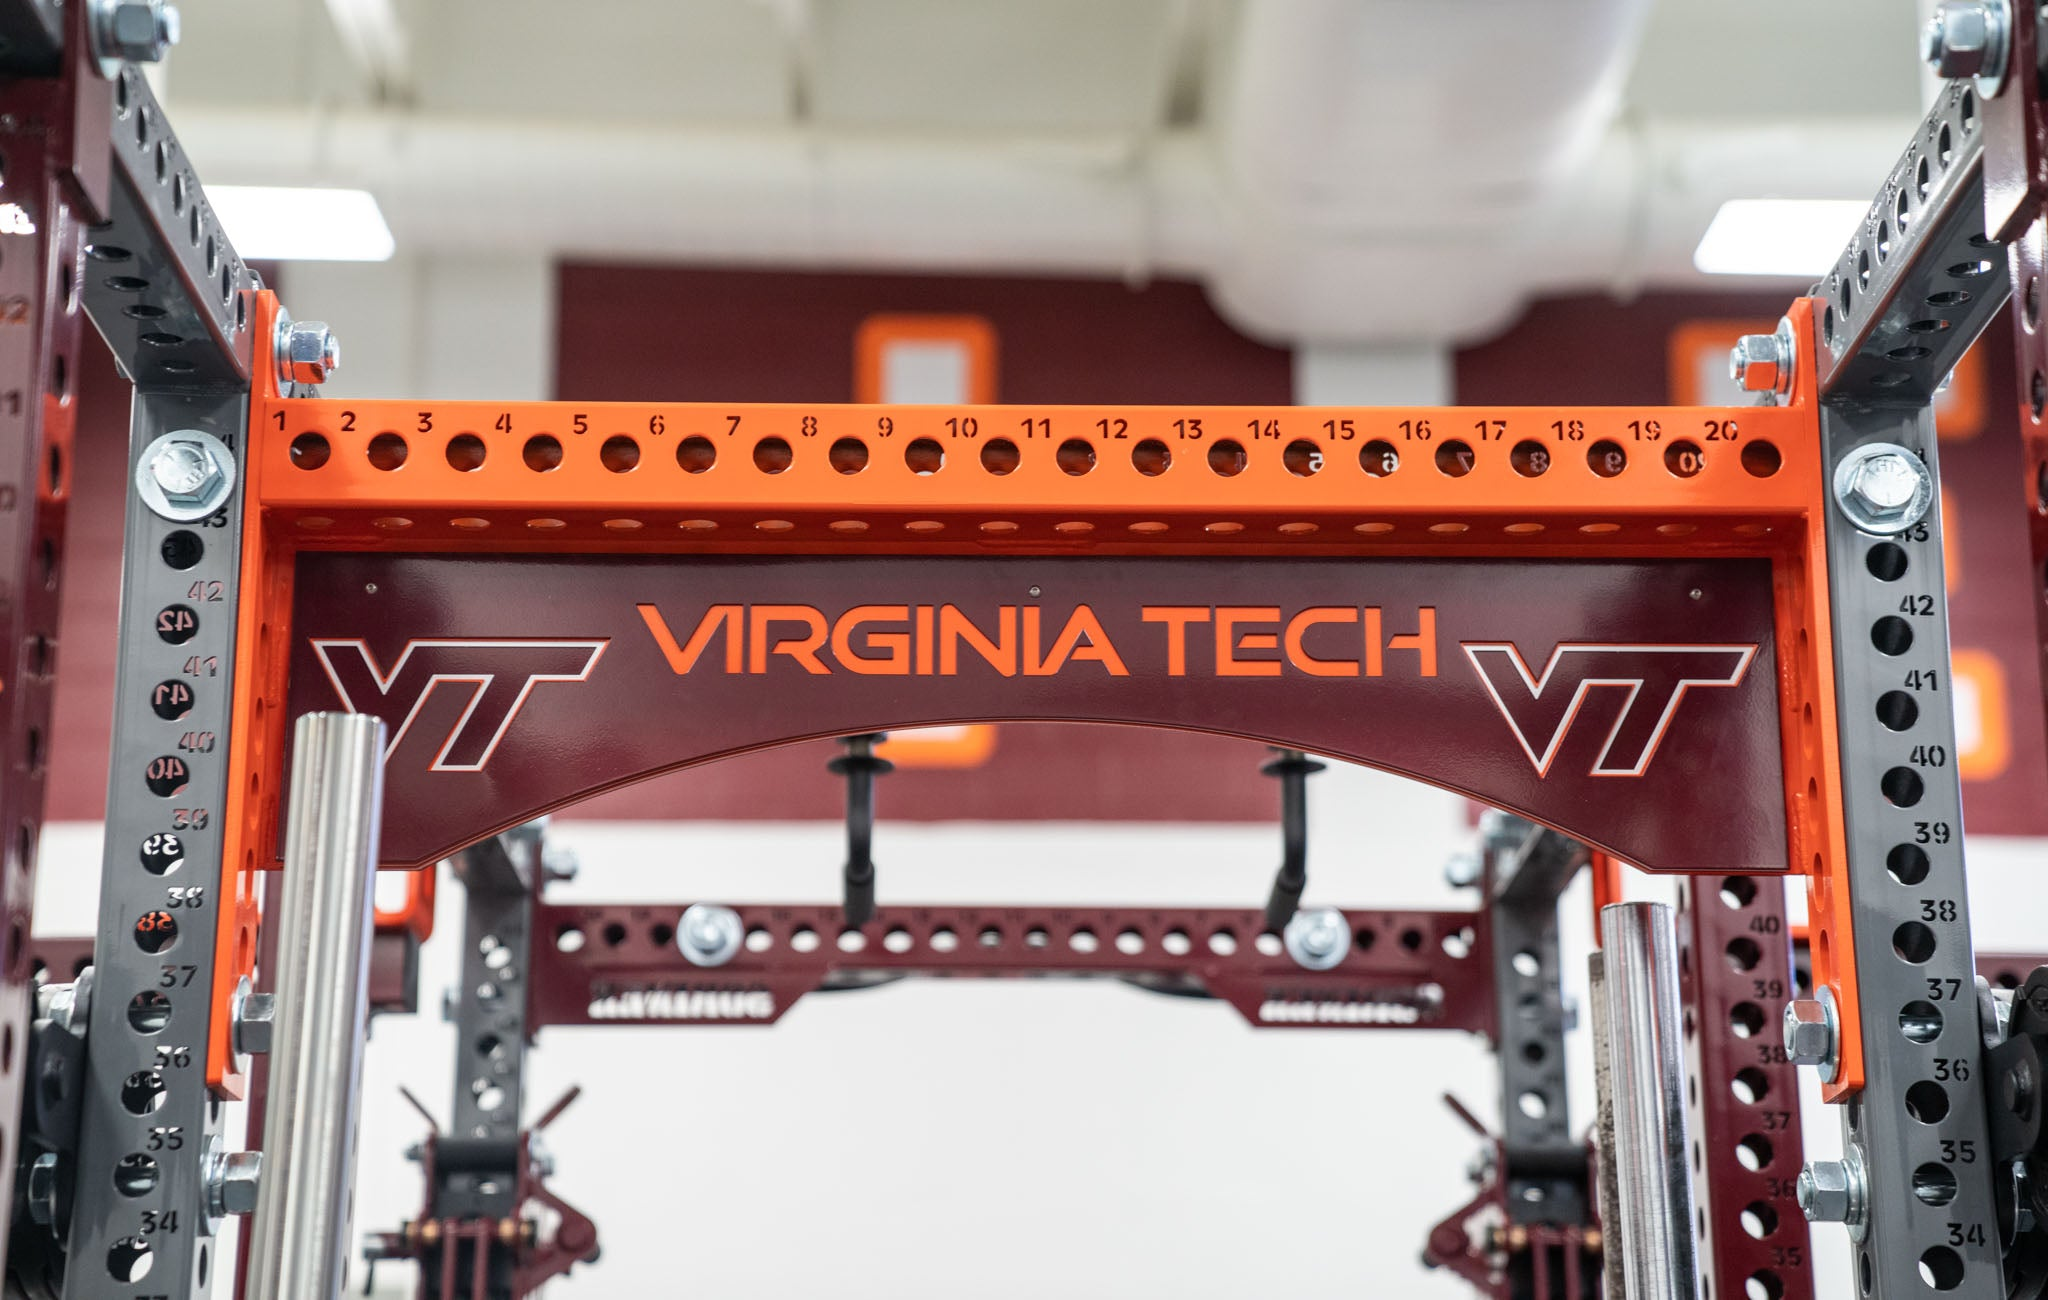 Virginia Tech power racks